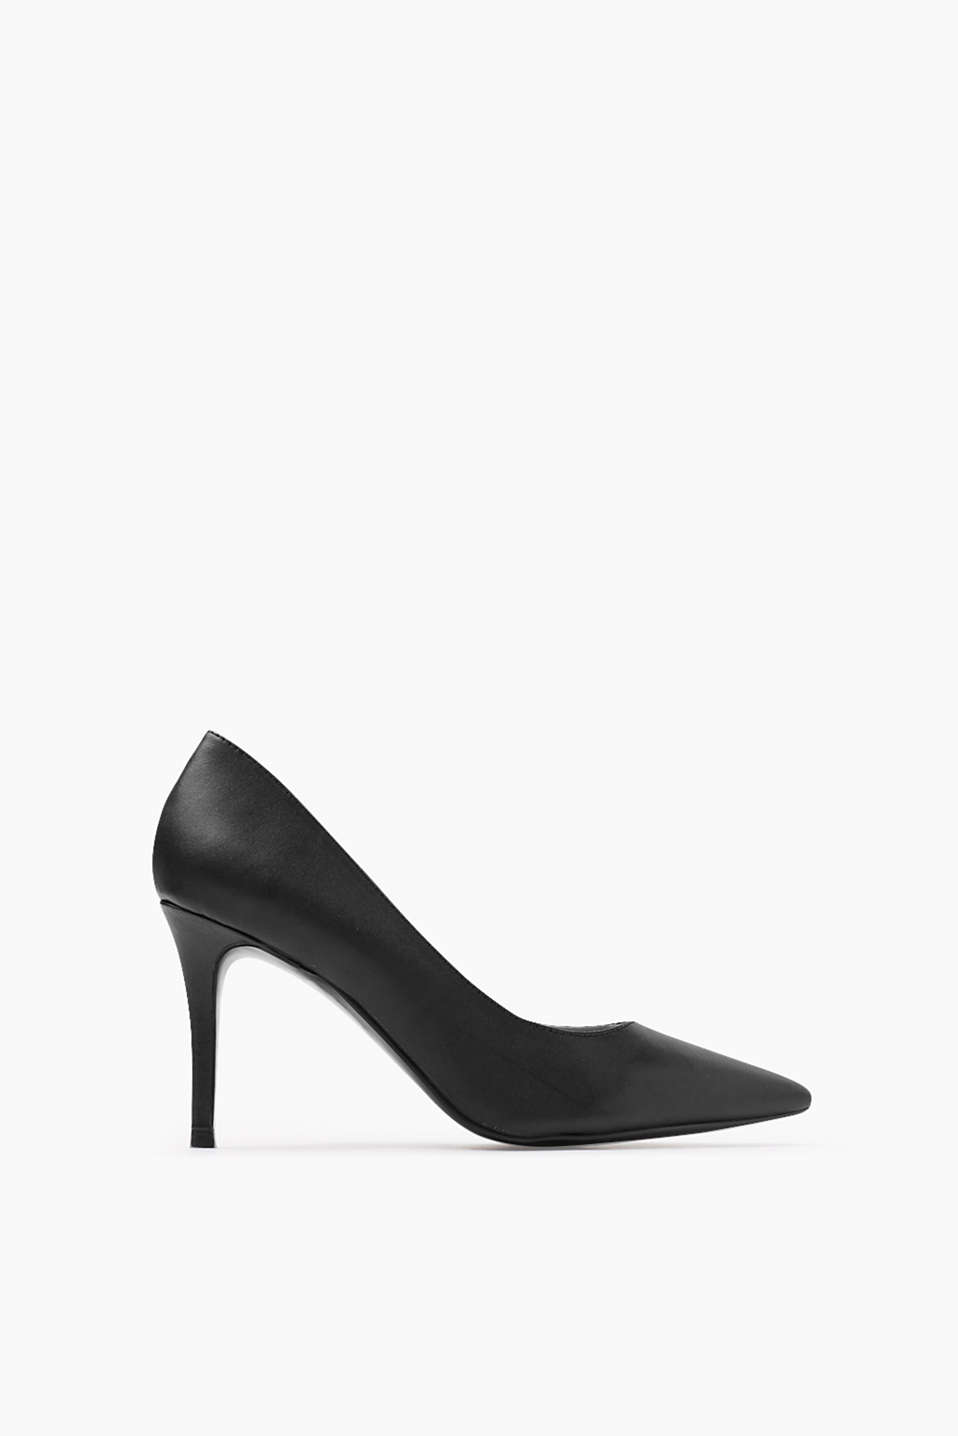 with a pointed toe and a high heel (approx. 10 cm)